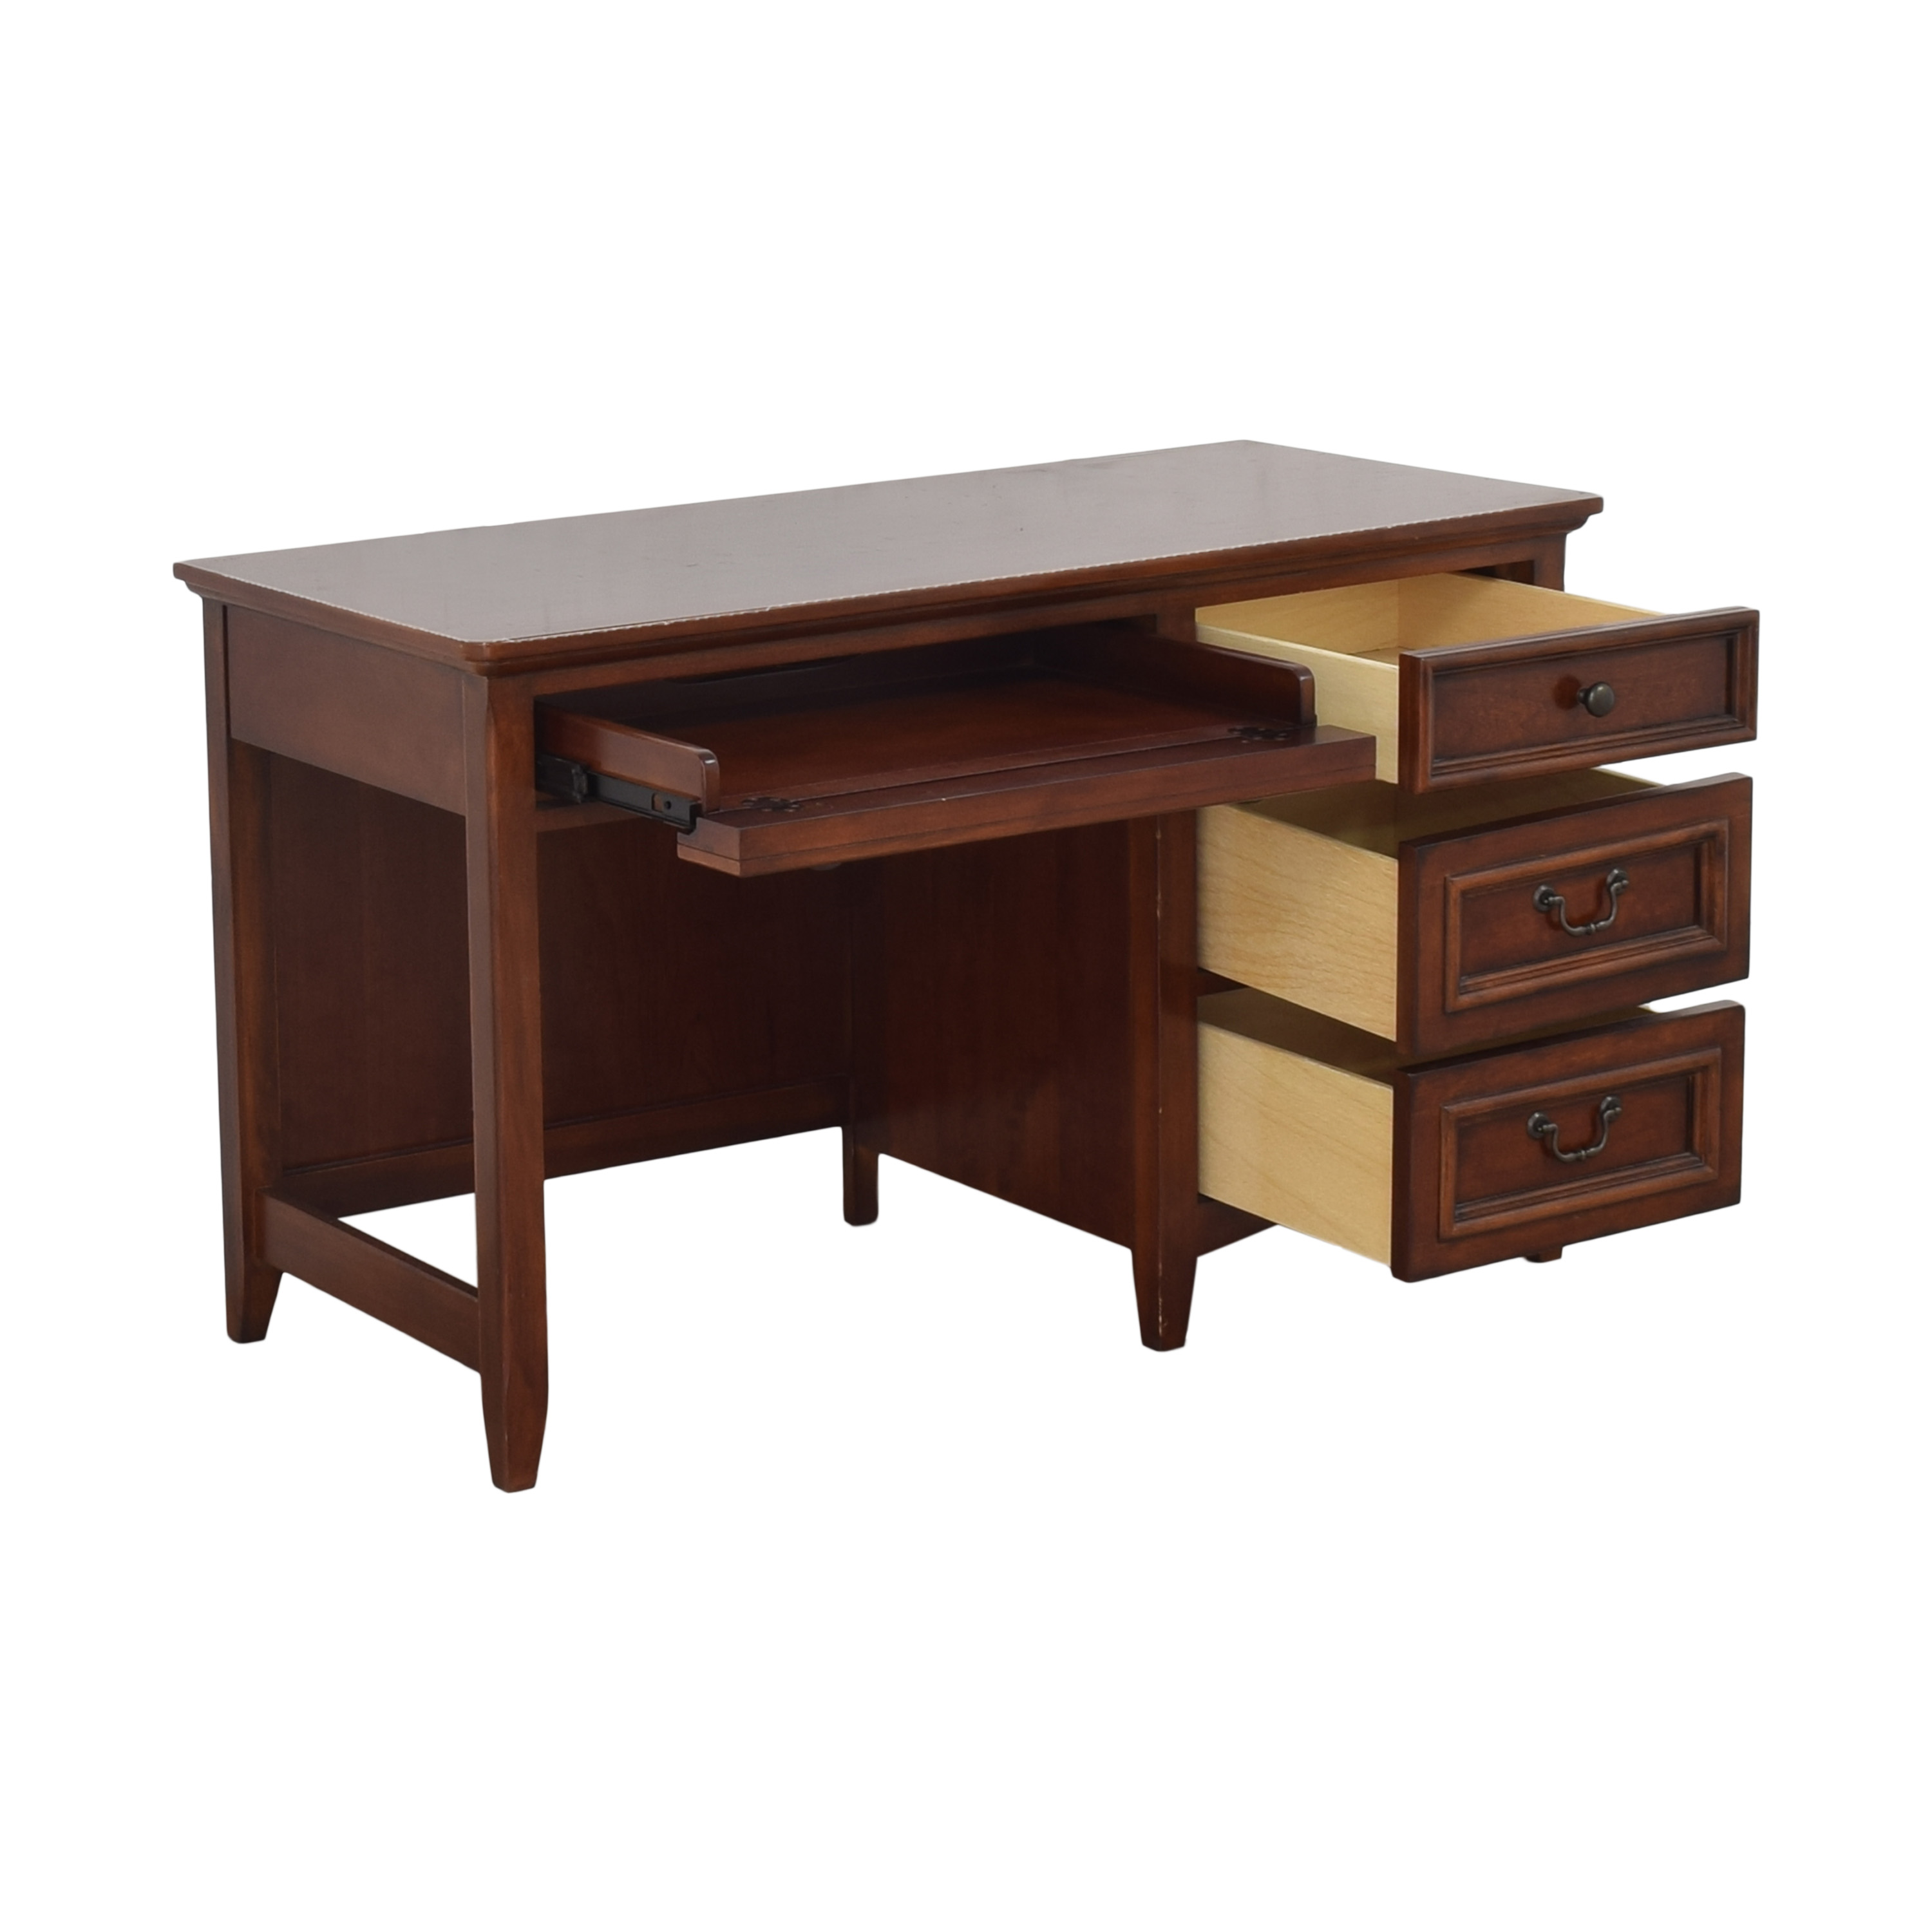 Broyhill Furniture Broyhill Writing Desk second hand